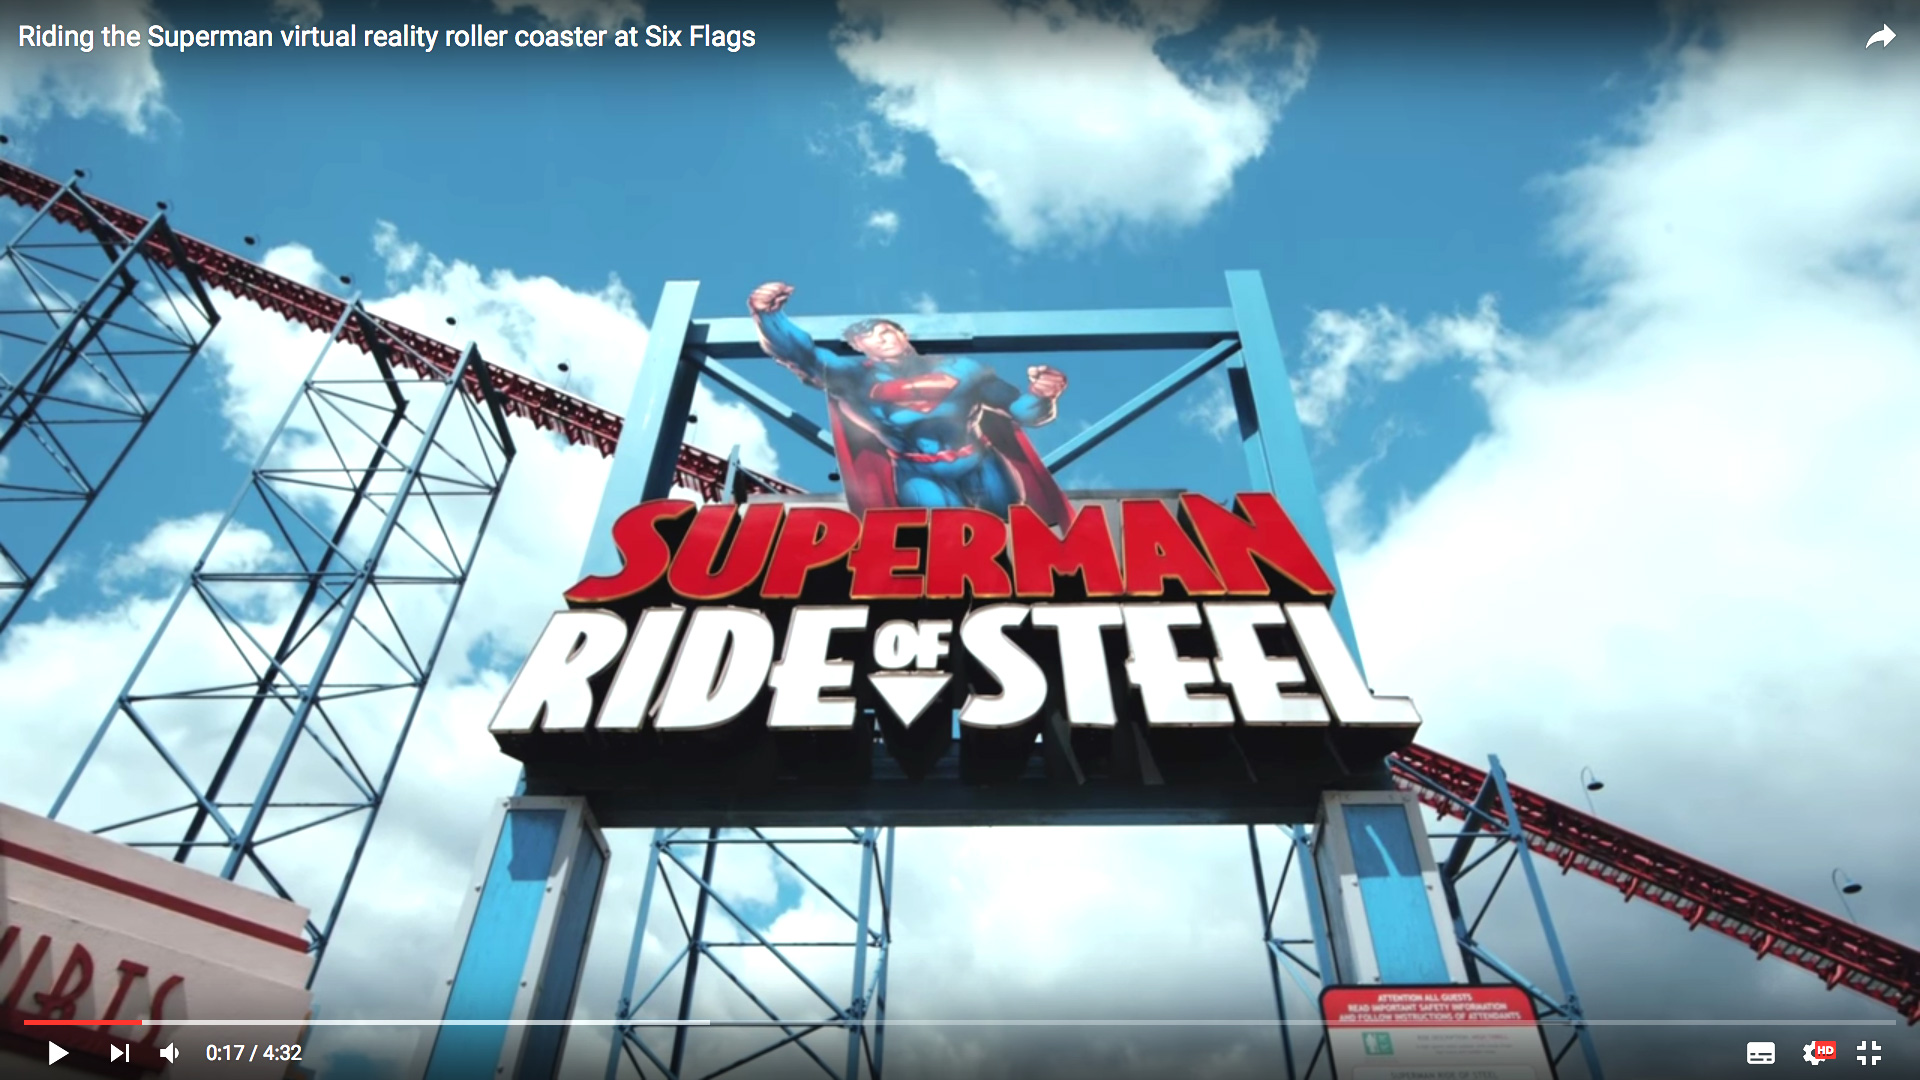 Superman's virtual reality roller coaster